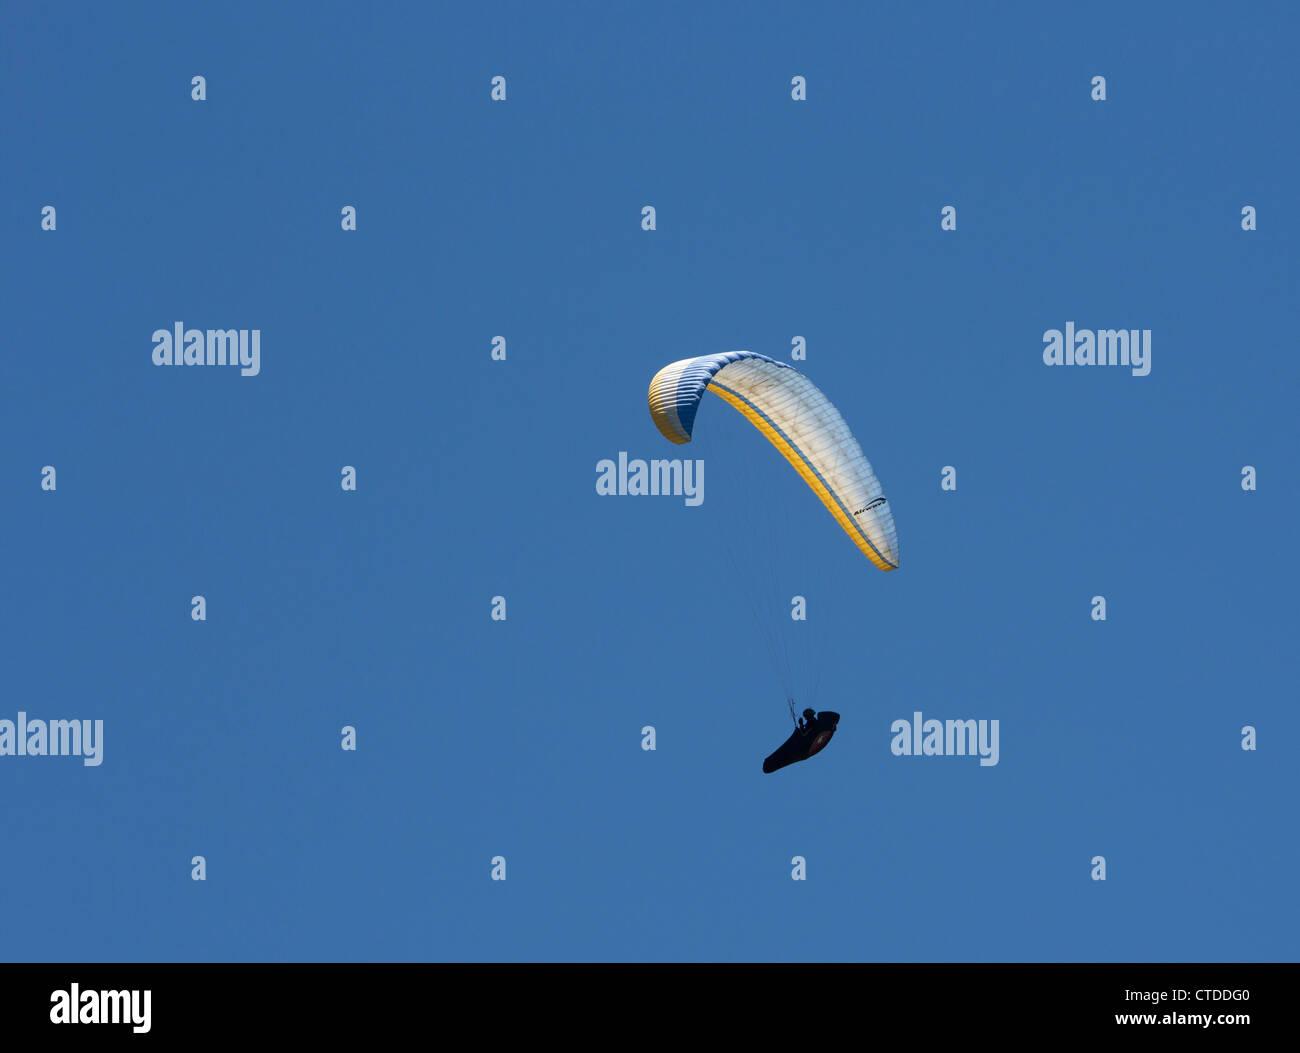 Twin Peaks, California - A paraglider soars above the San Gabriel Valley. Stock Photo